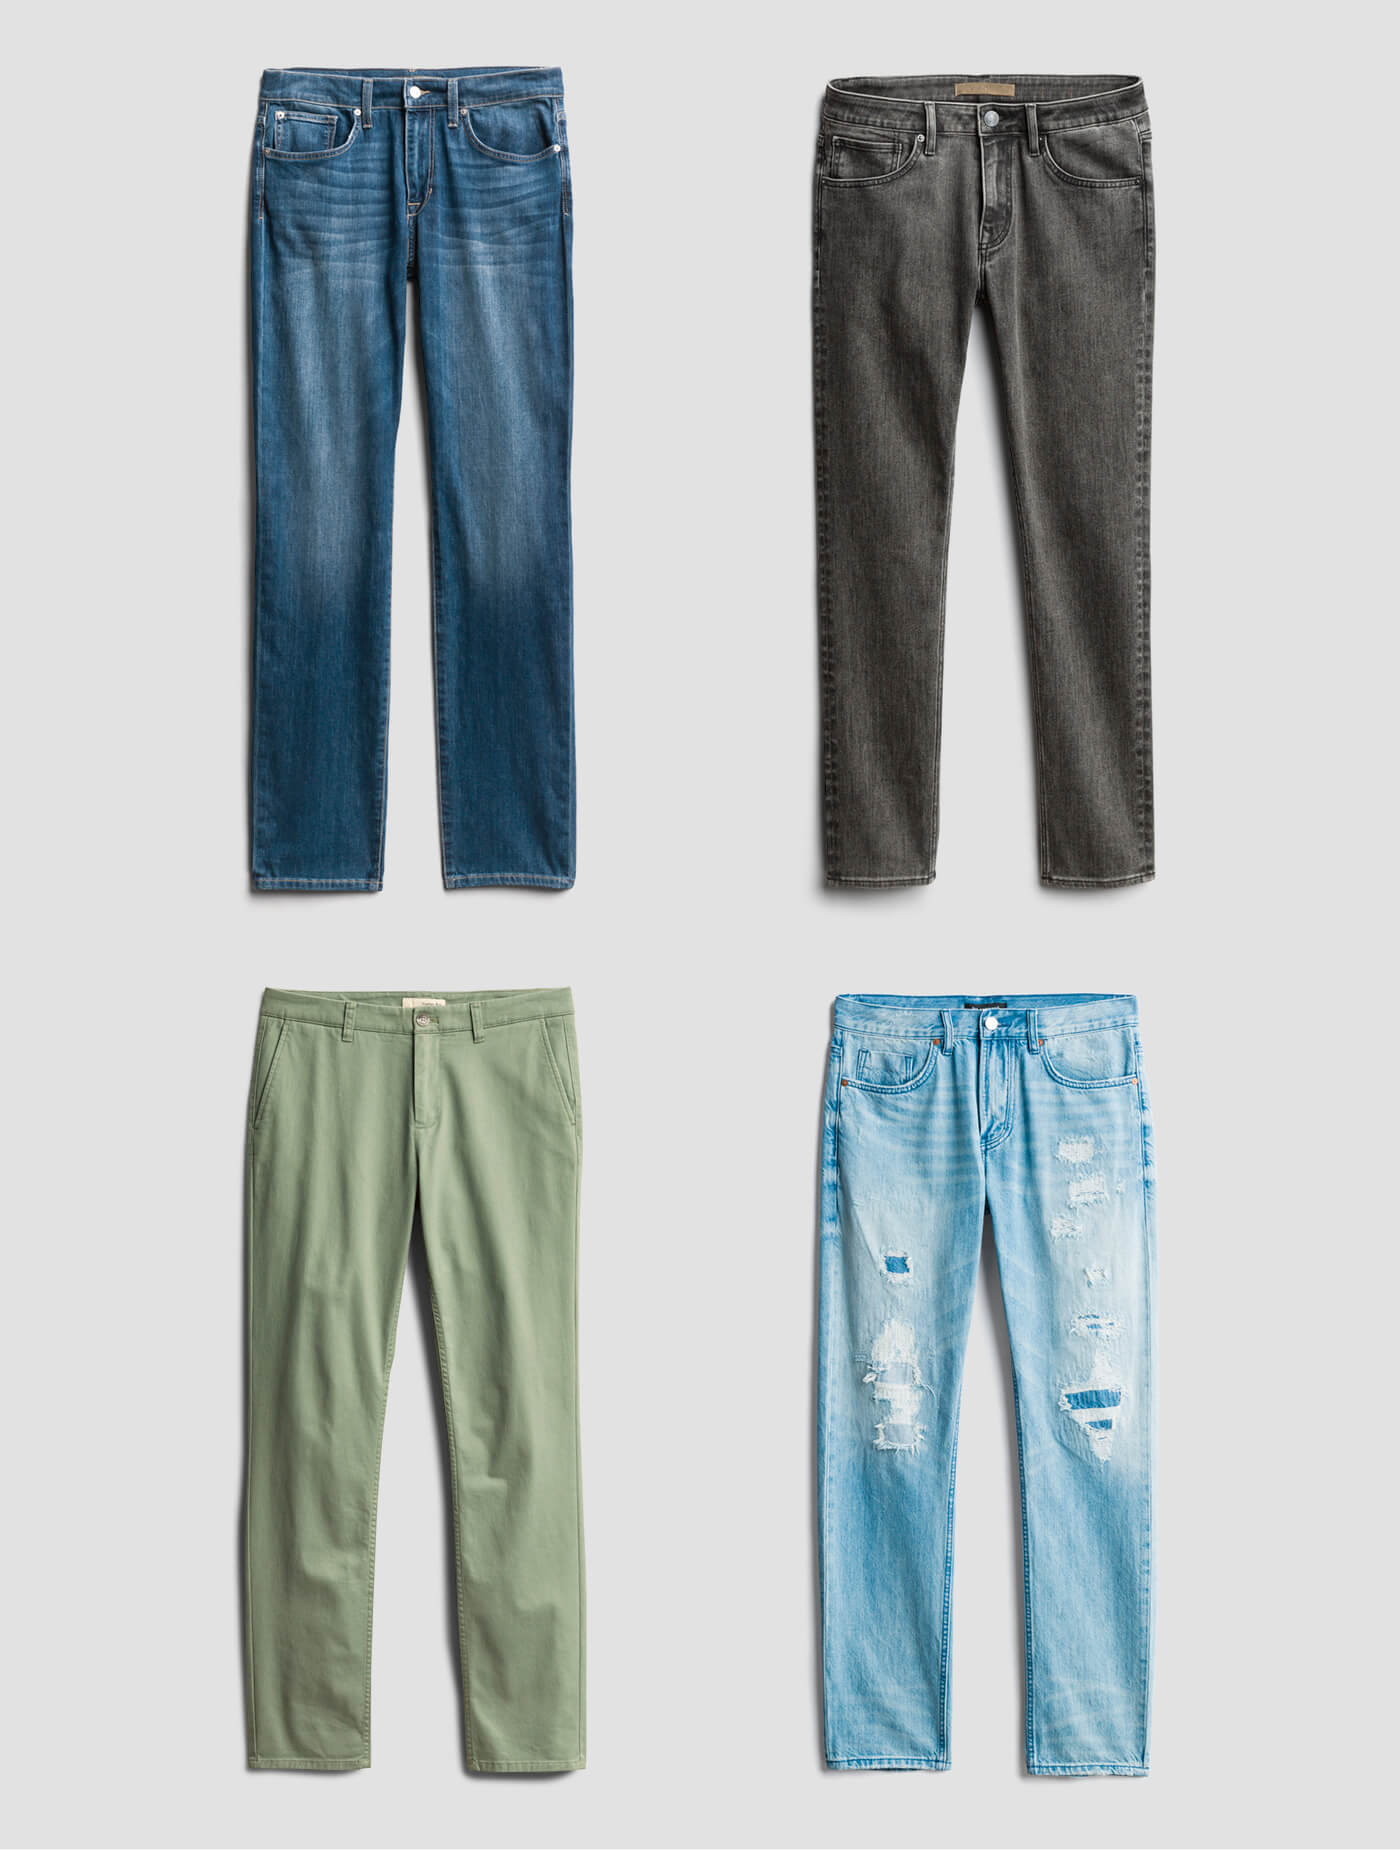 pants for men's festival outfits